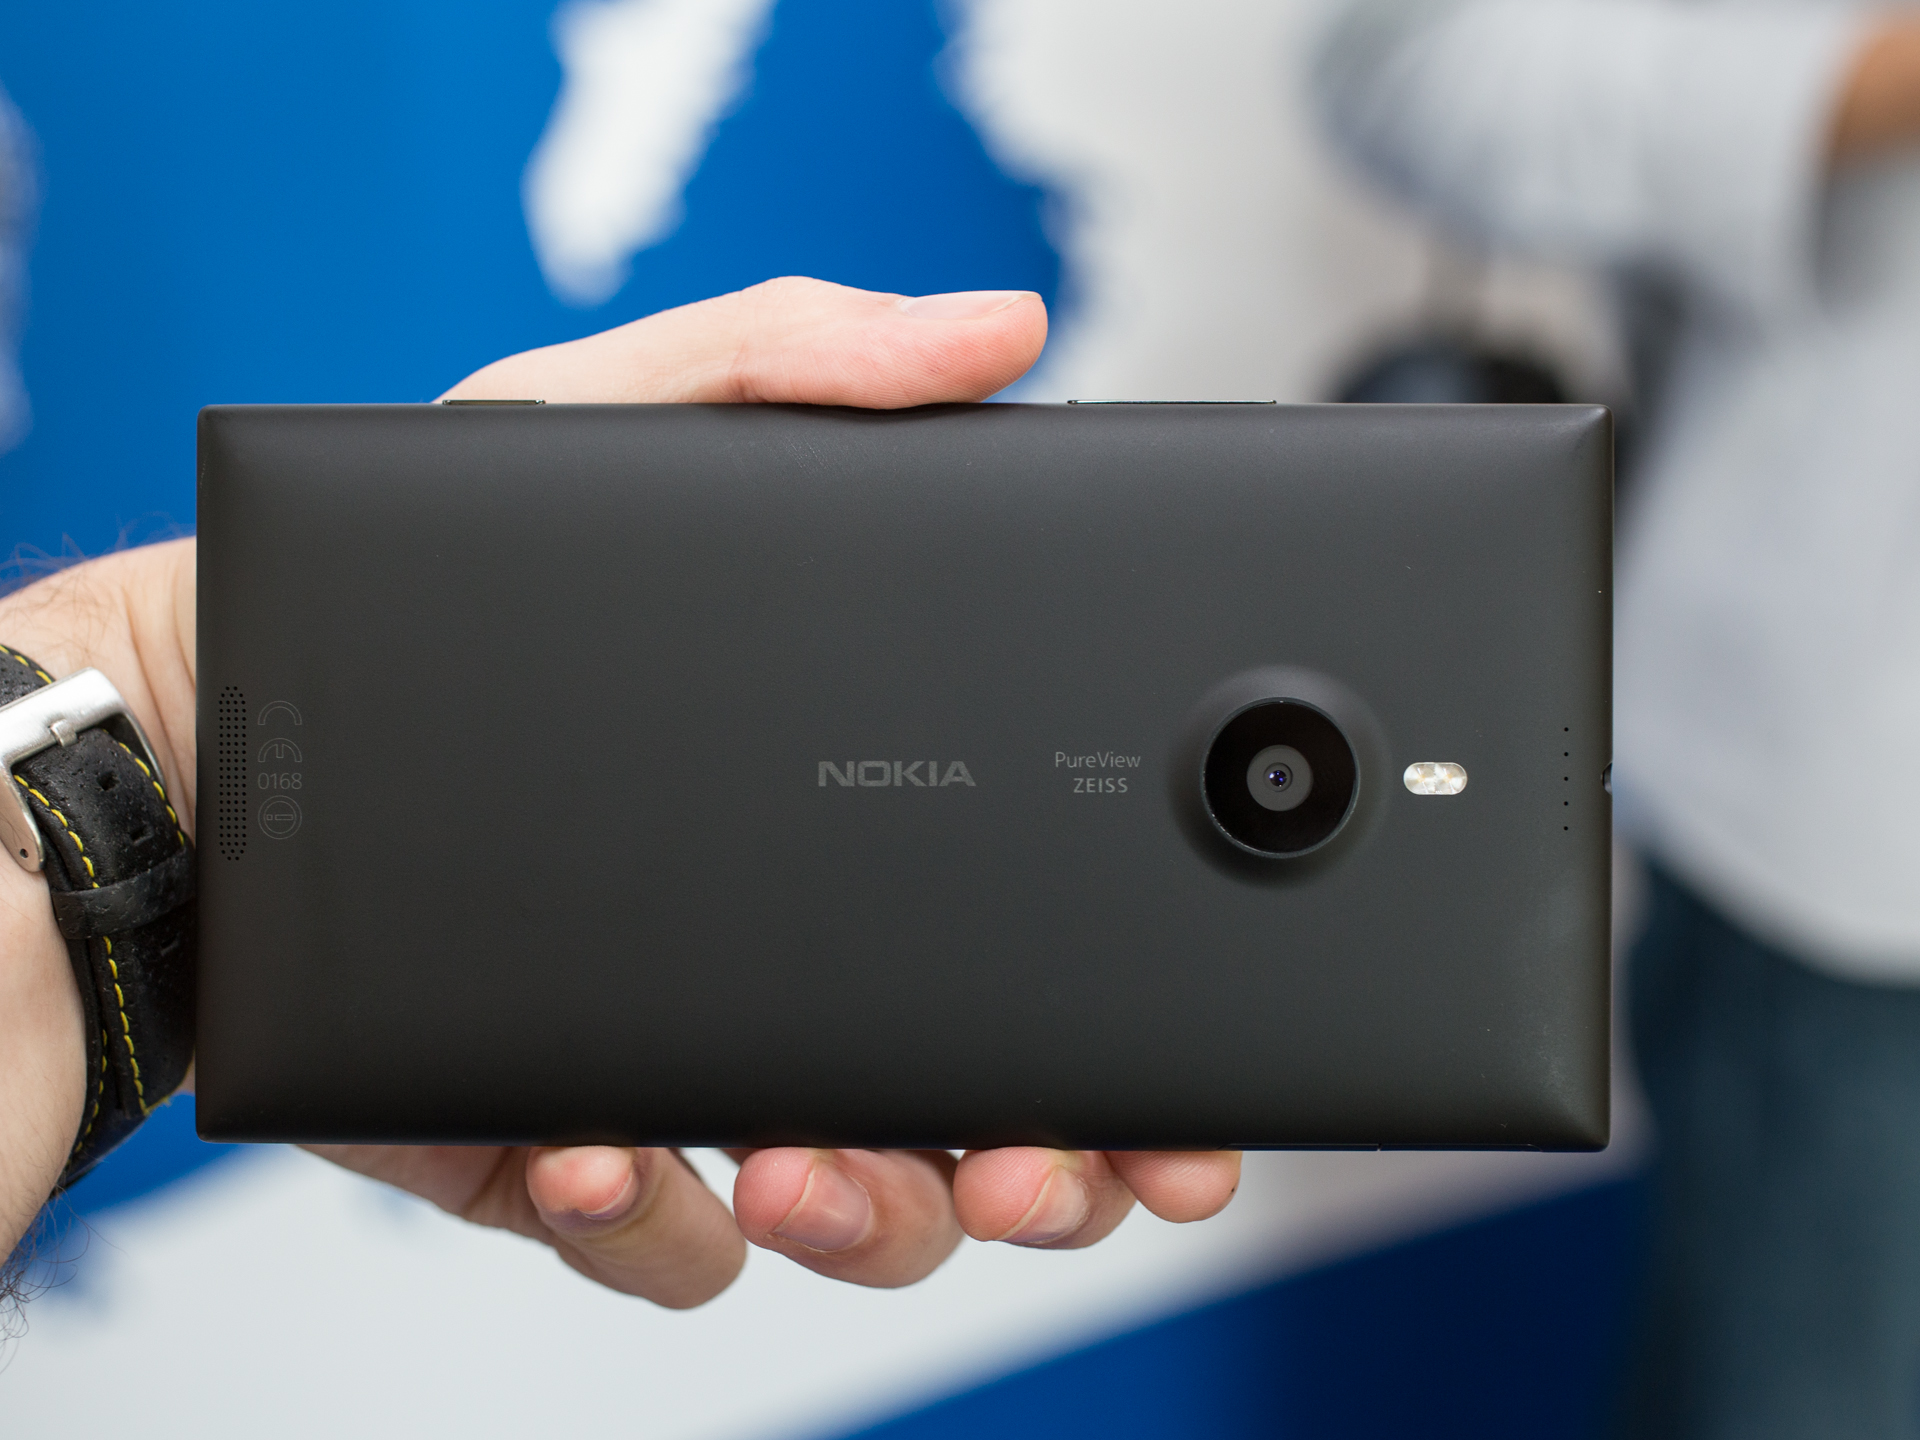 The Nokia Lumia 1520 comes with a 20-megapixel image sensor and a Carl Zeiss f2.4 lens.